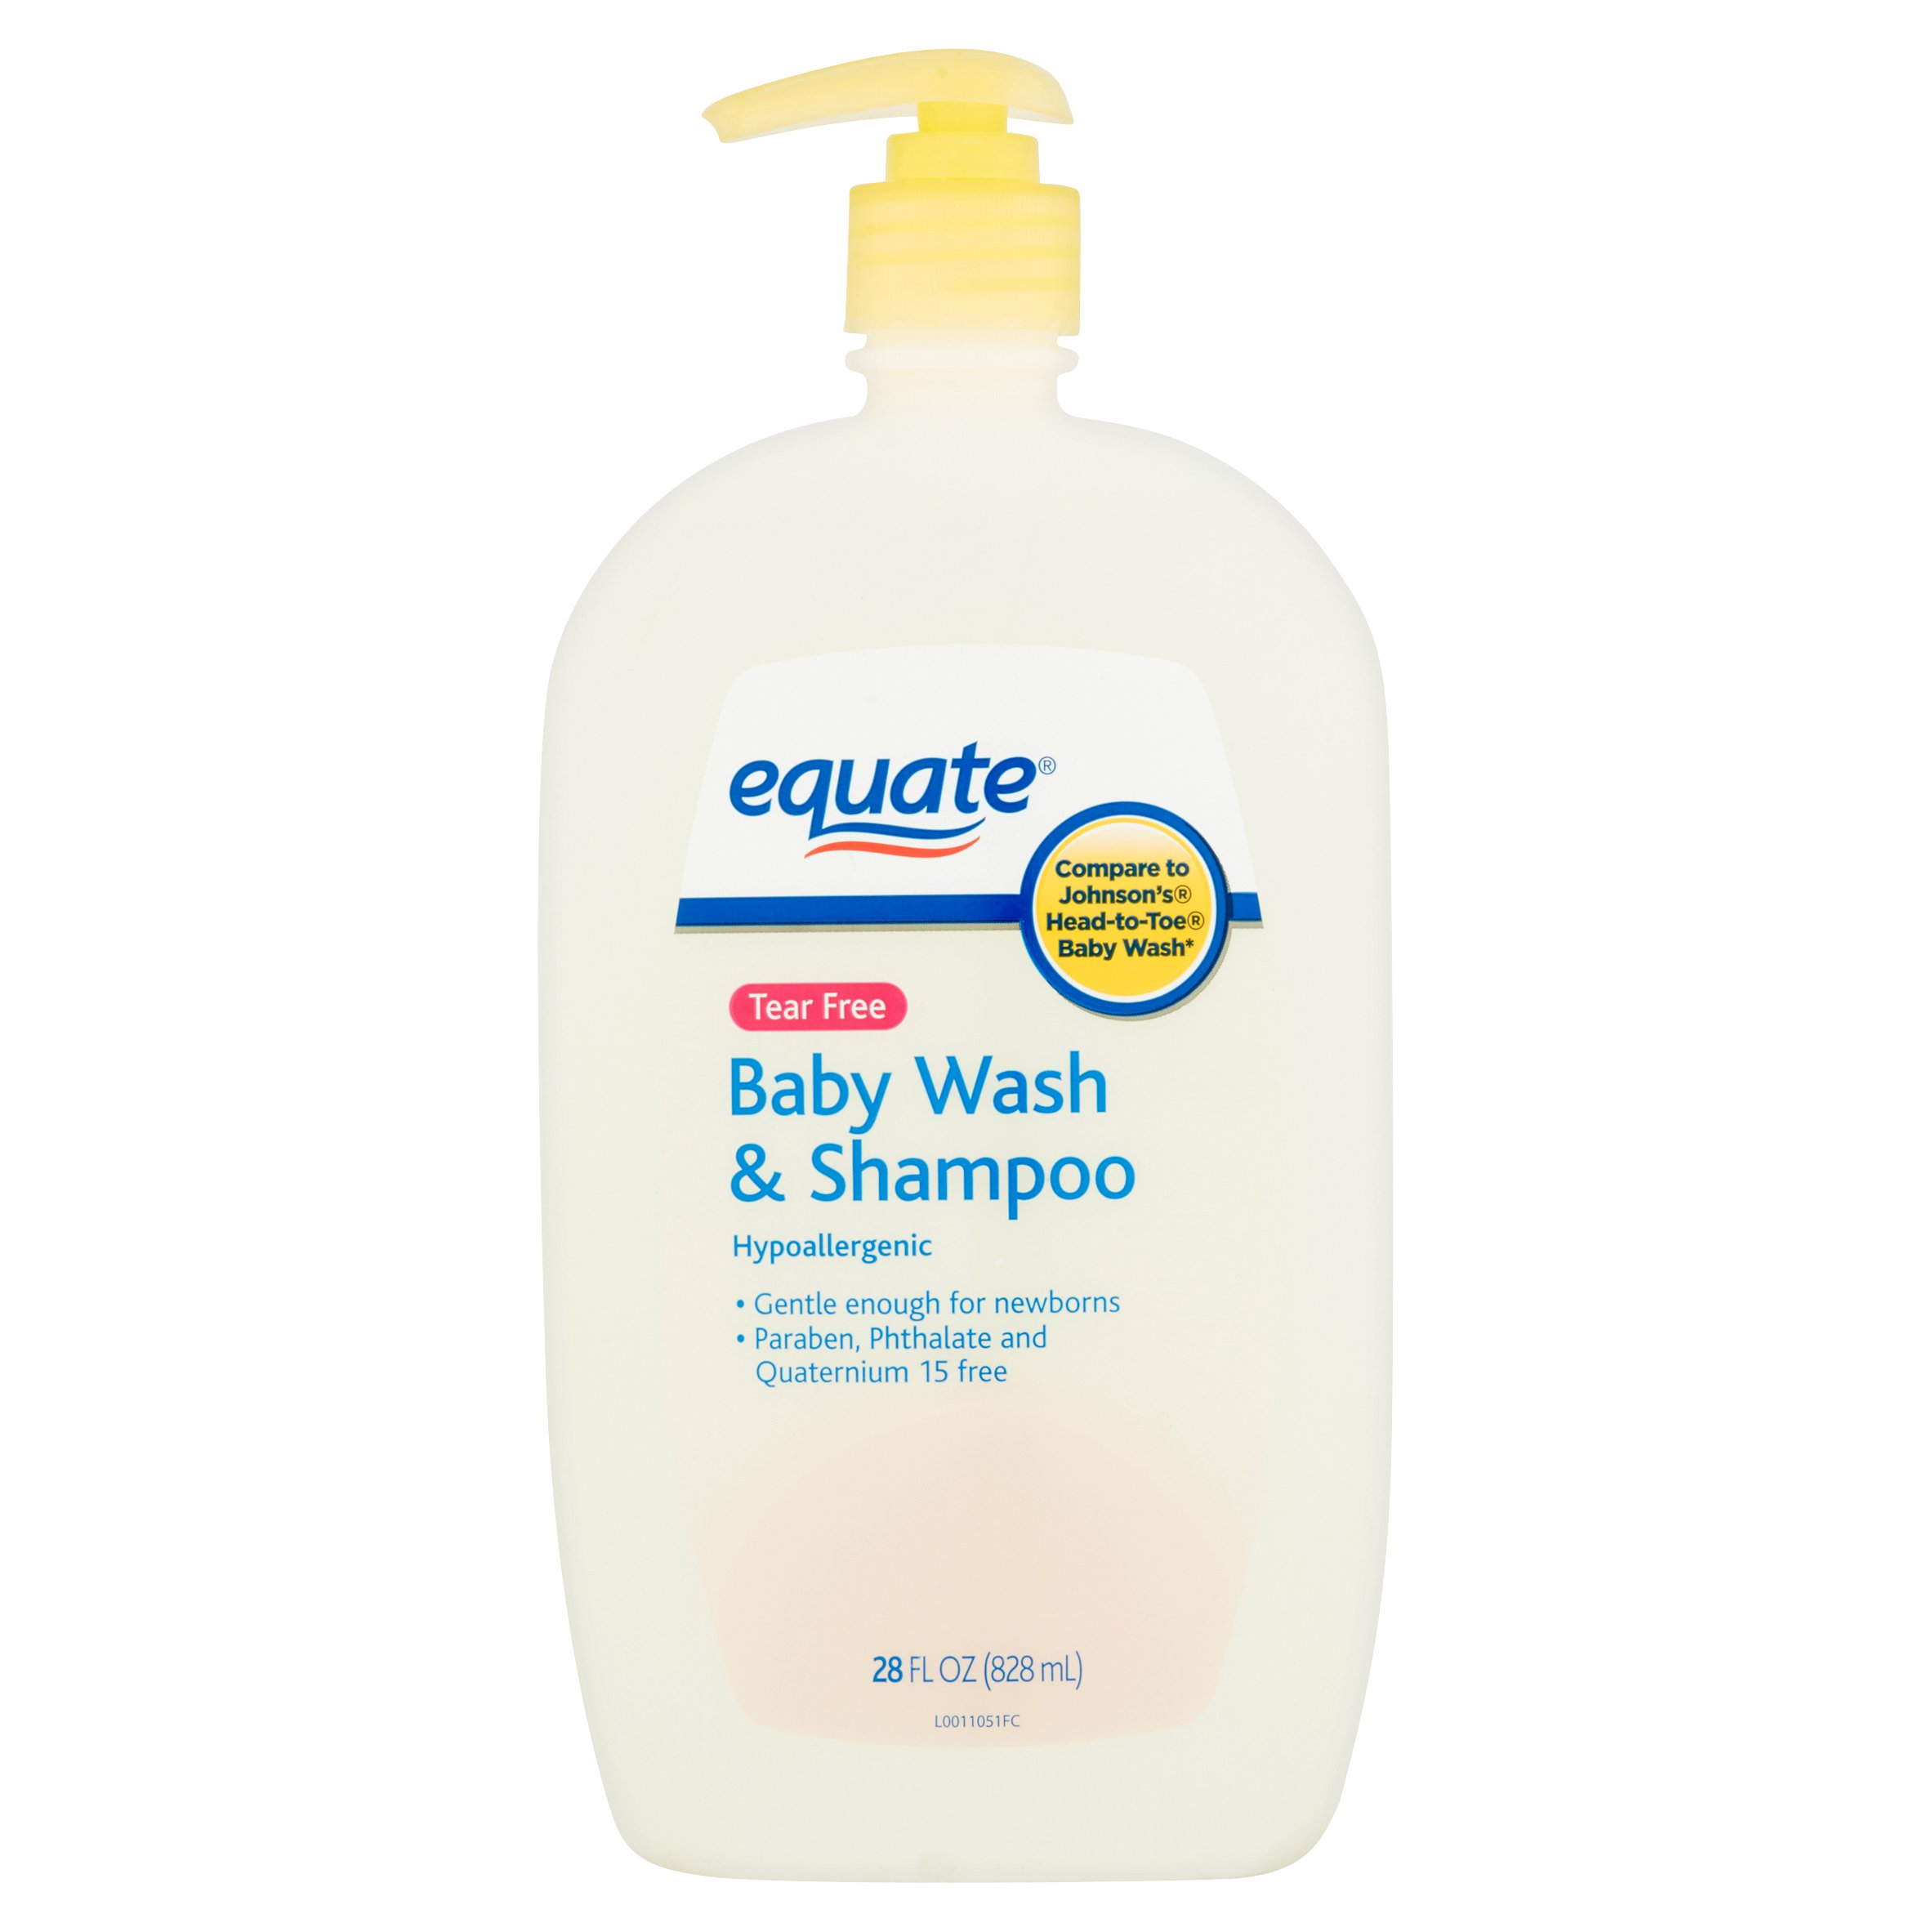 Equate Tear-Free Baby Wash & Shampoo, 28 Fl Oz